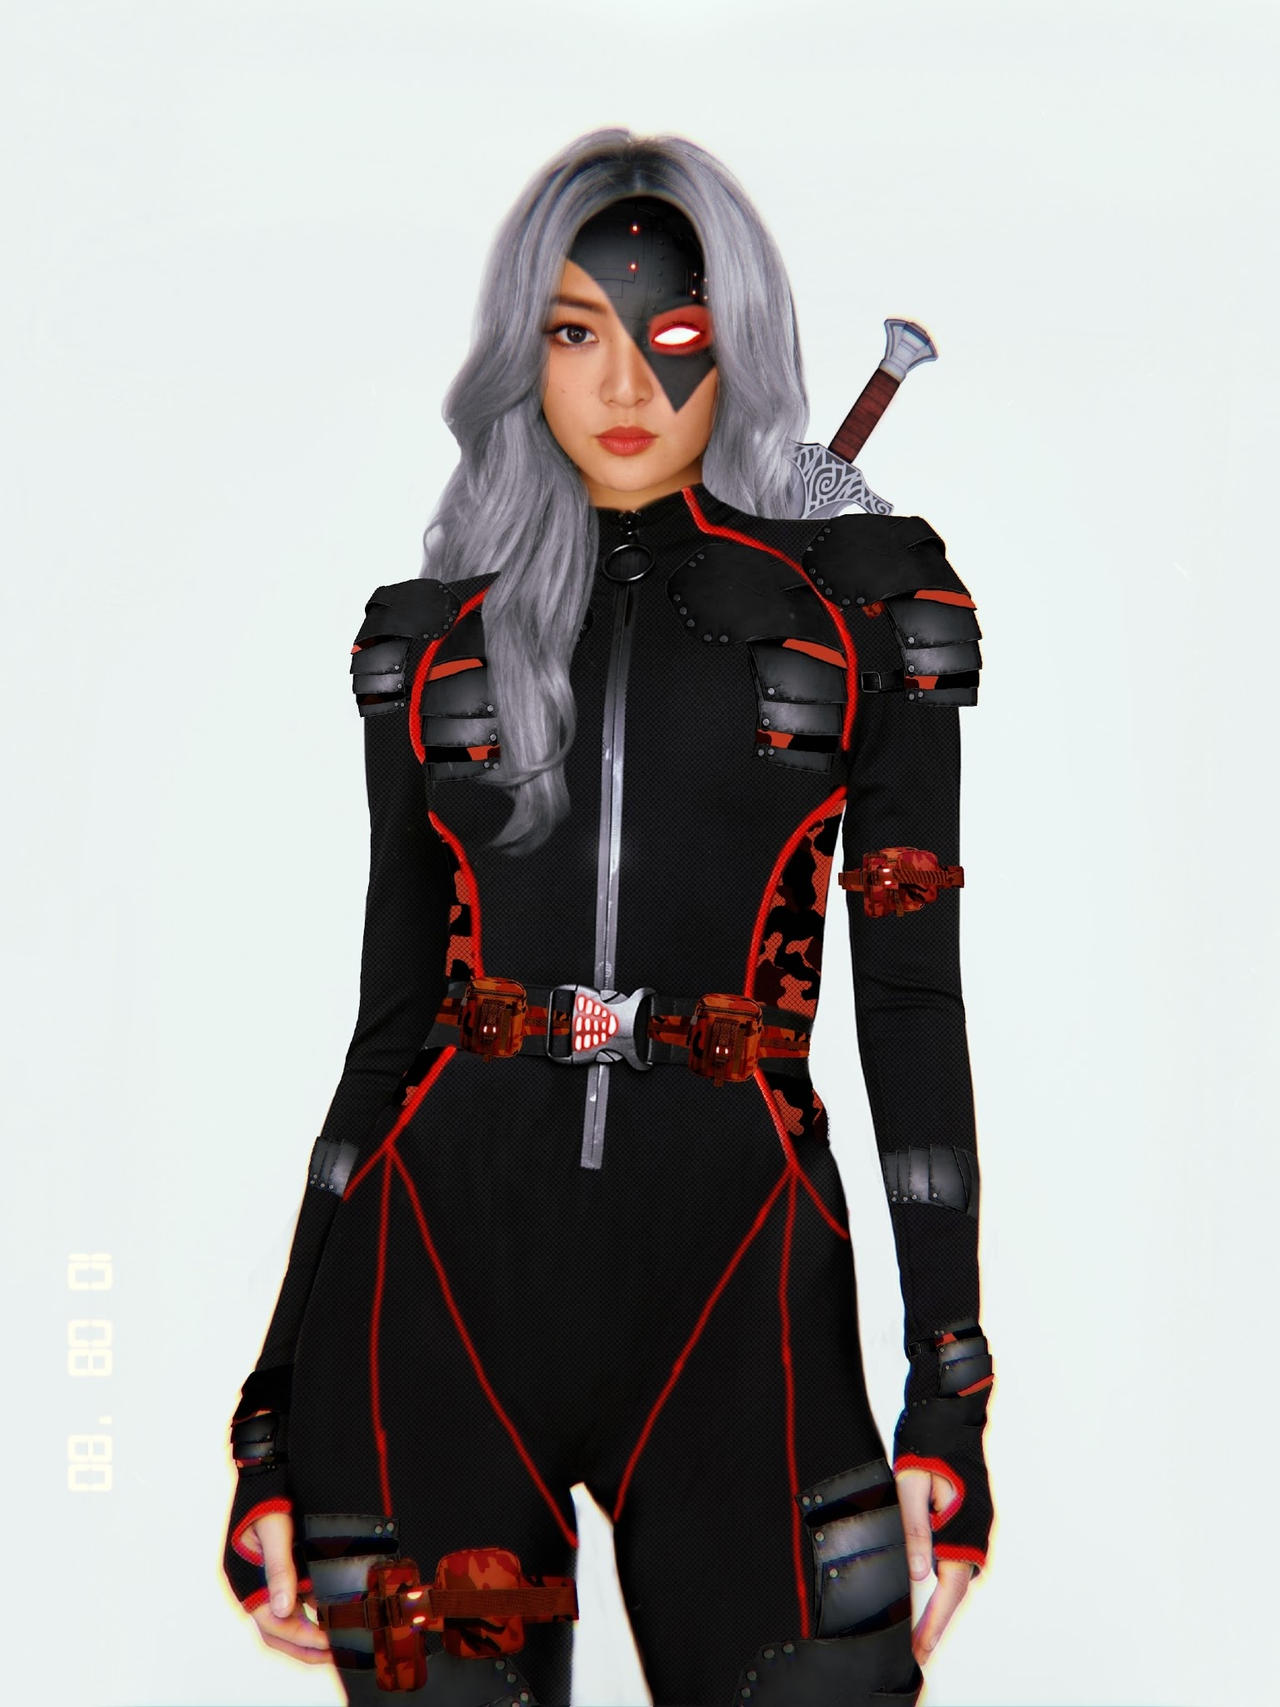 Chelsea Zhang As Ravager By Hemely12 On Deviantart Millennials is a generation who grew up with computers, internet and social networks. chelsea zhang as ravager by hemely12 on